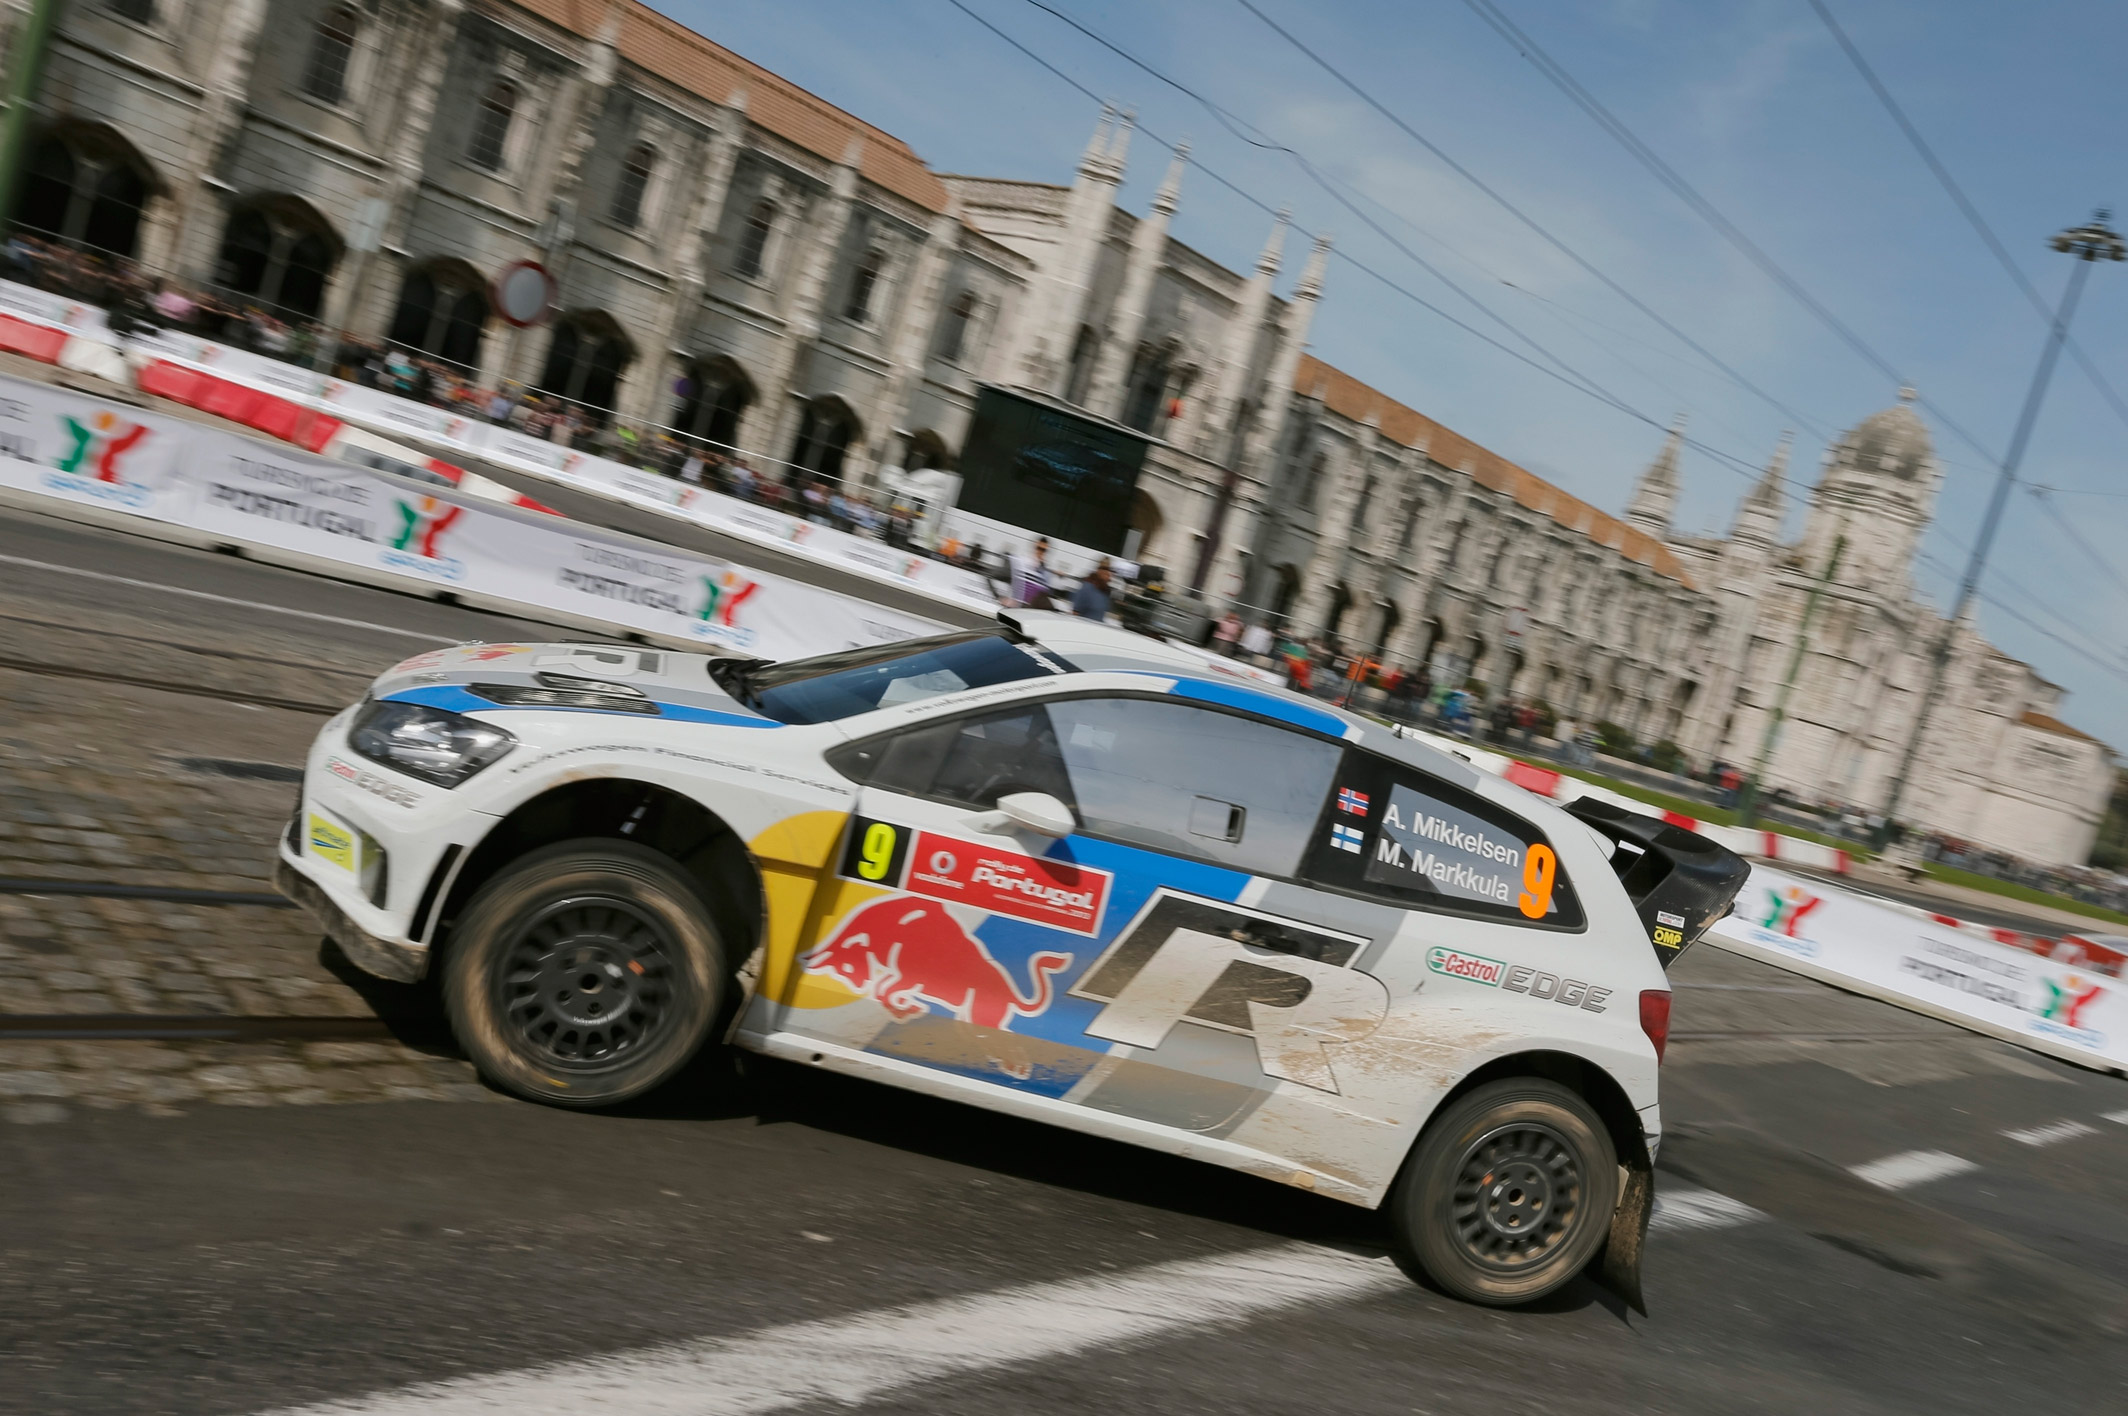 vw-polo-wrc-portugal-2013-3